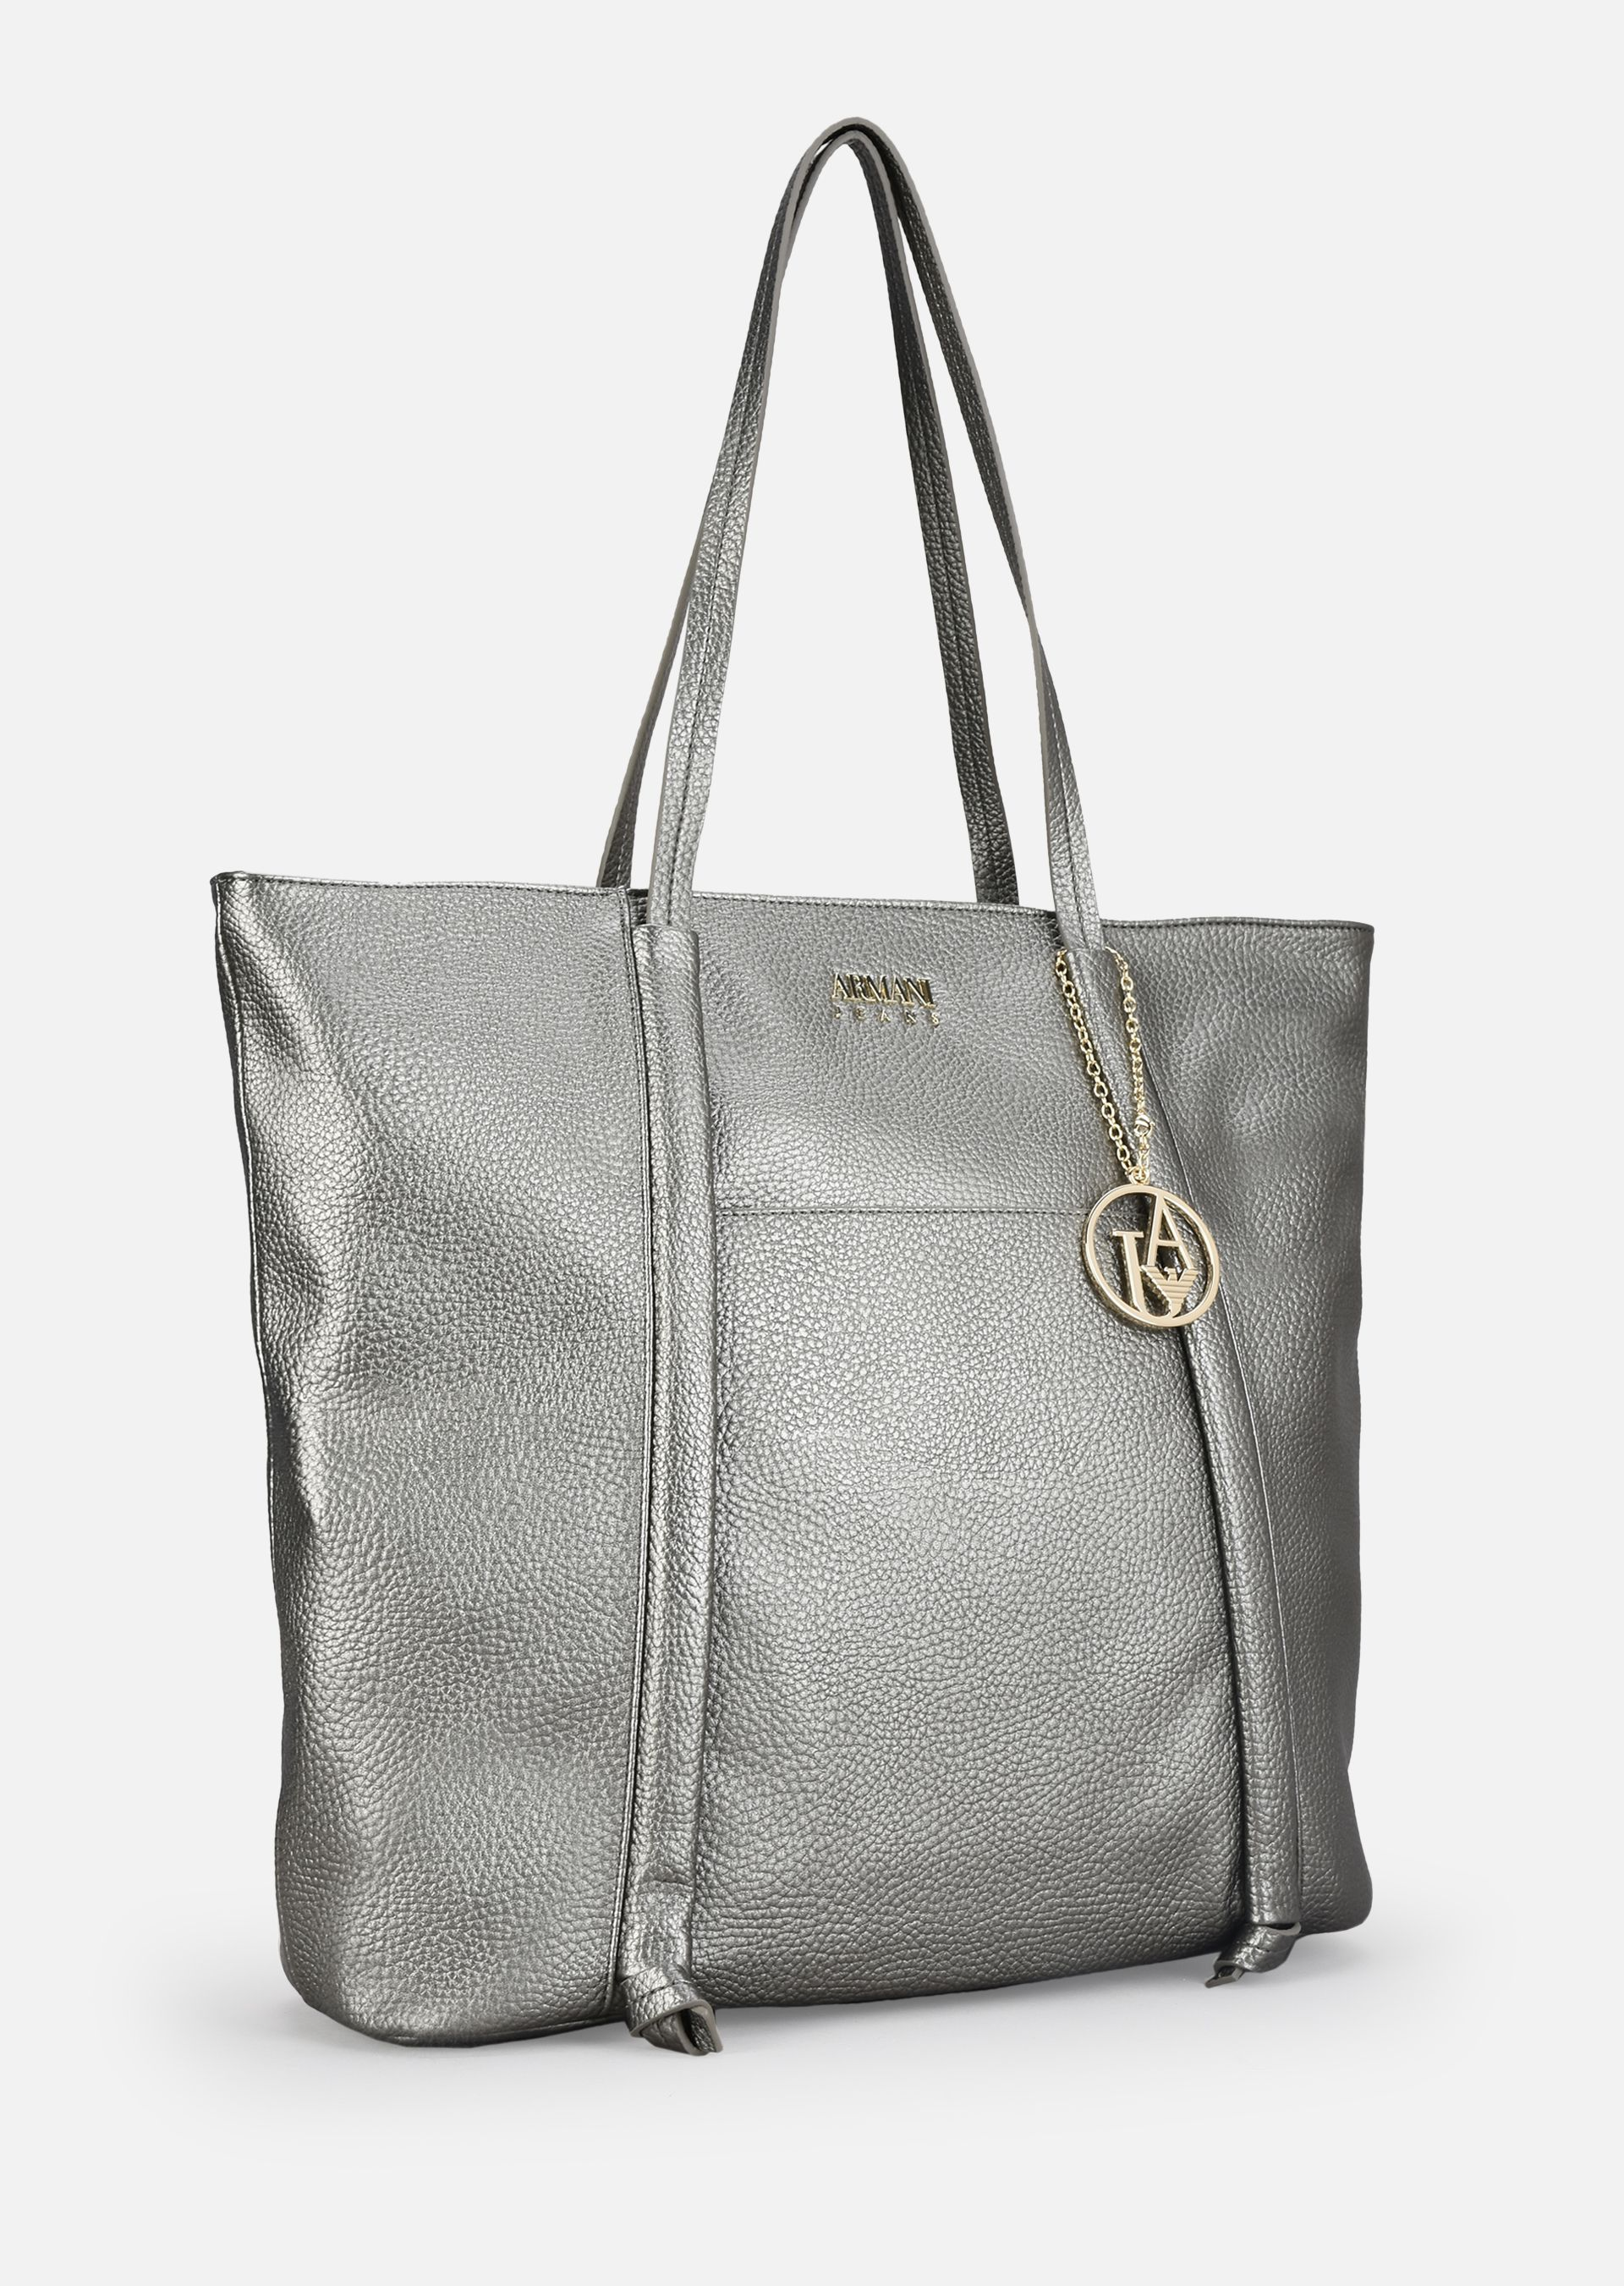 Sac D'emballage En Vente, Blanc, Polyester, 2017, Une Taille Armani